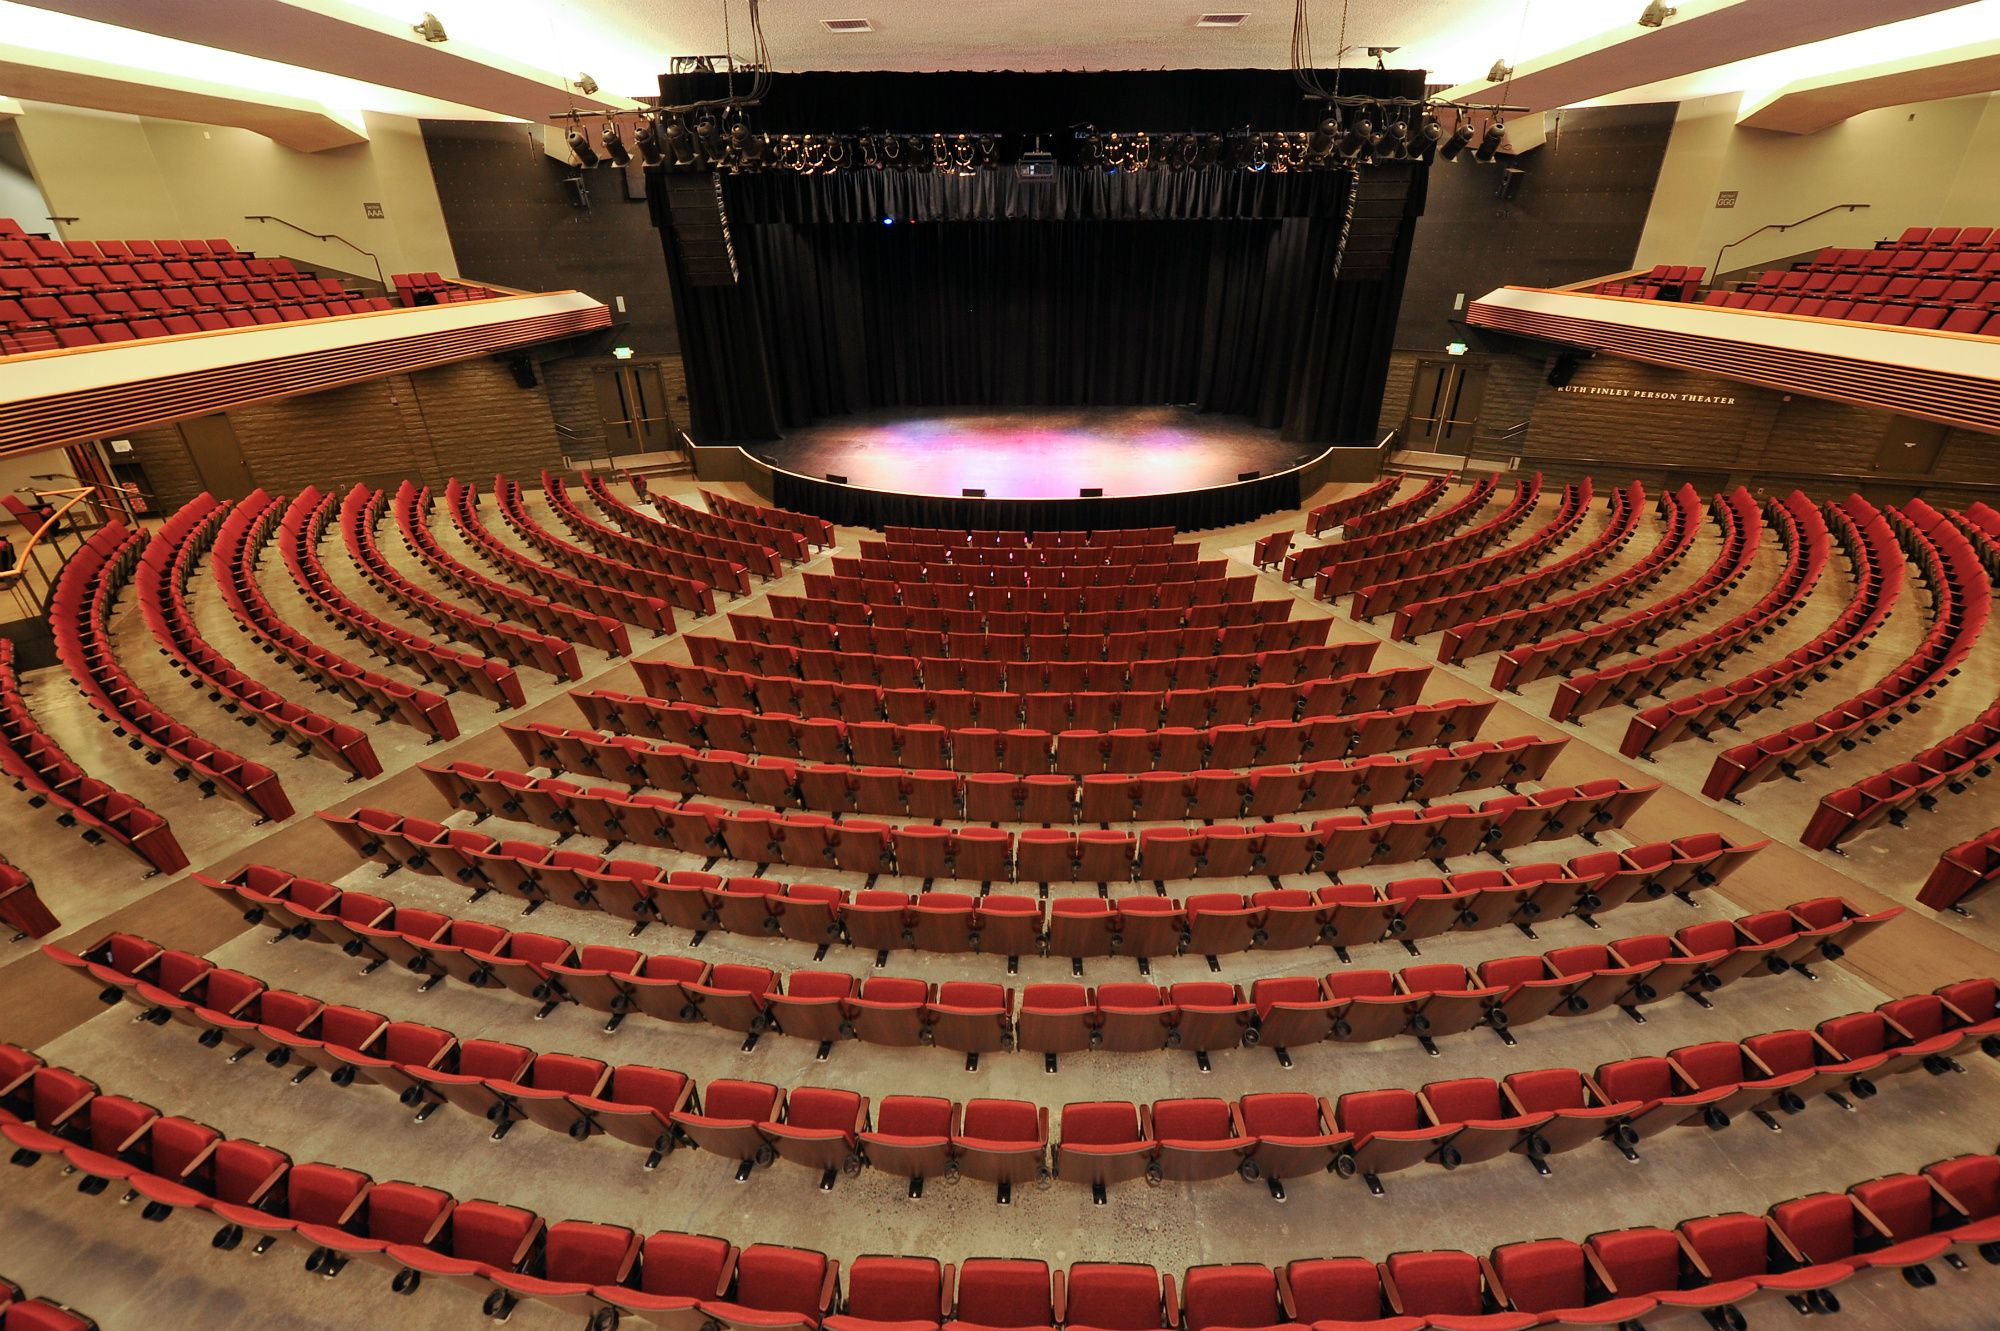 The Ruth Finley Person Theater Puts Your Event Center Stage And You In The Spotlight Seating Charts Seating Chair Popular